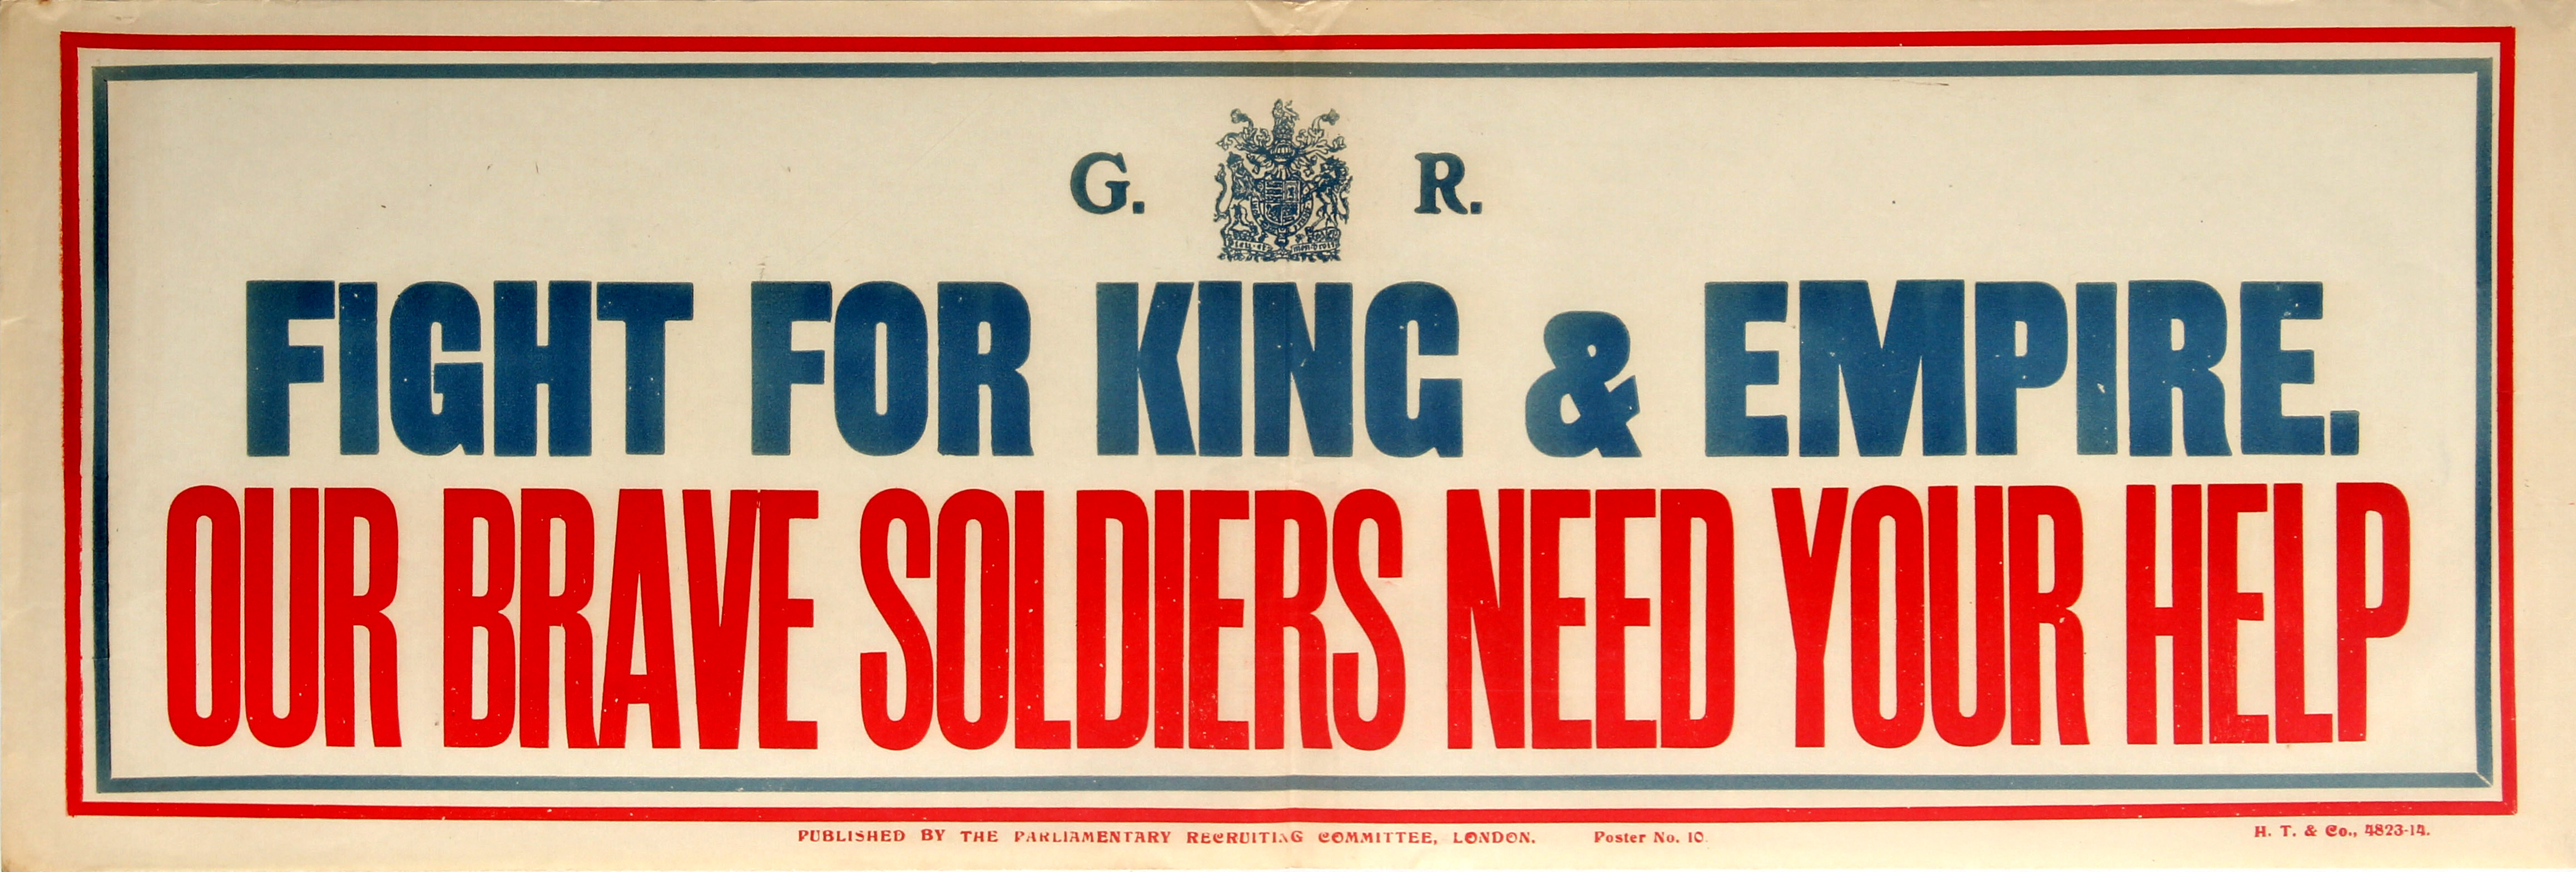 Lot 8 - War Poster Fight For King And Empire WWI UK